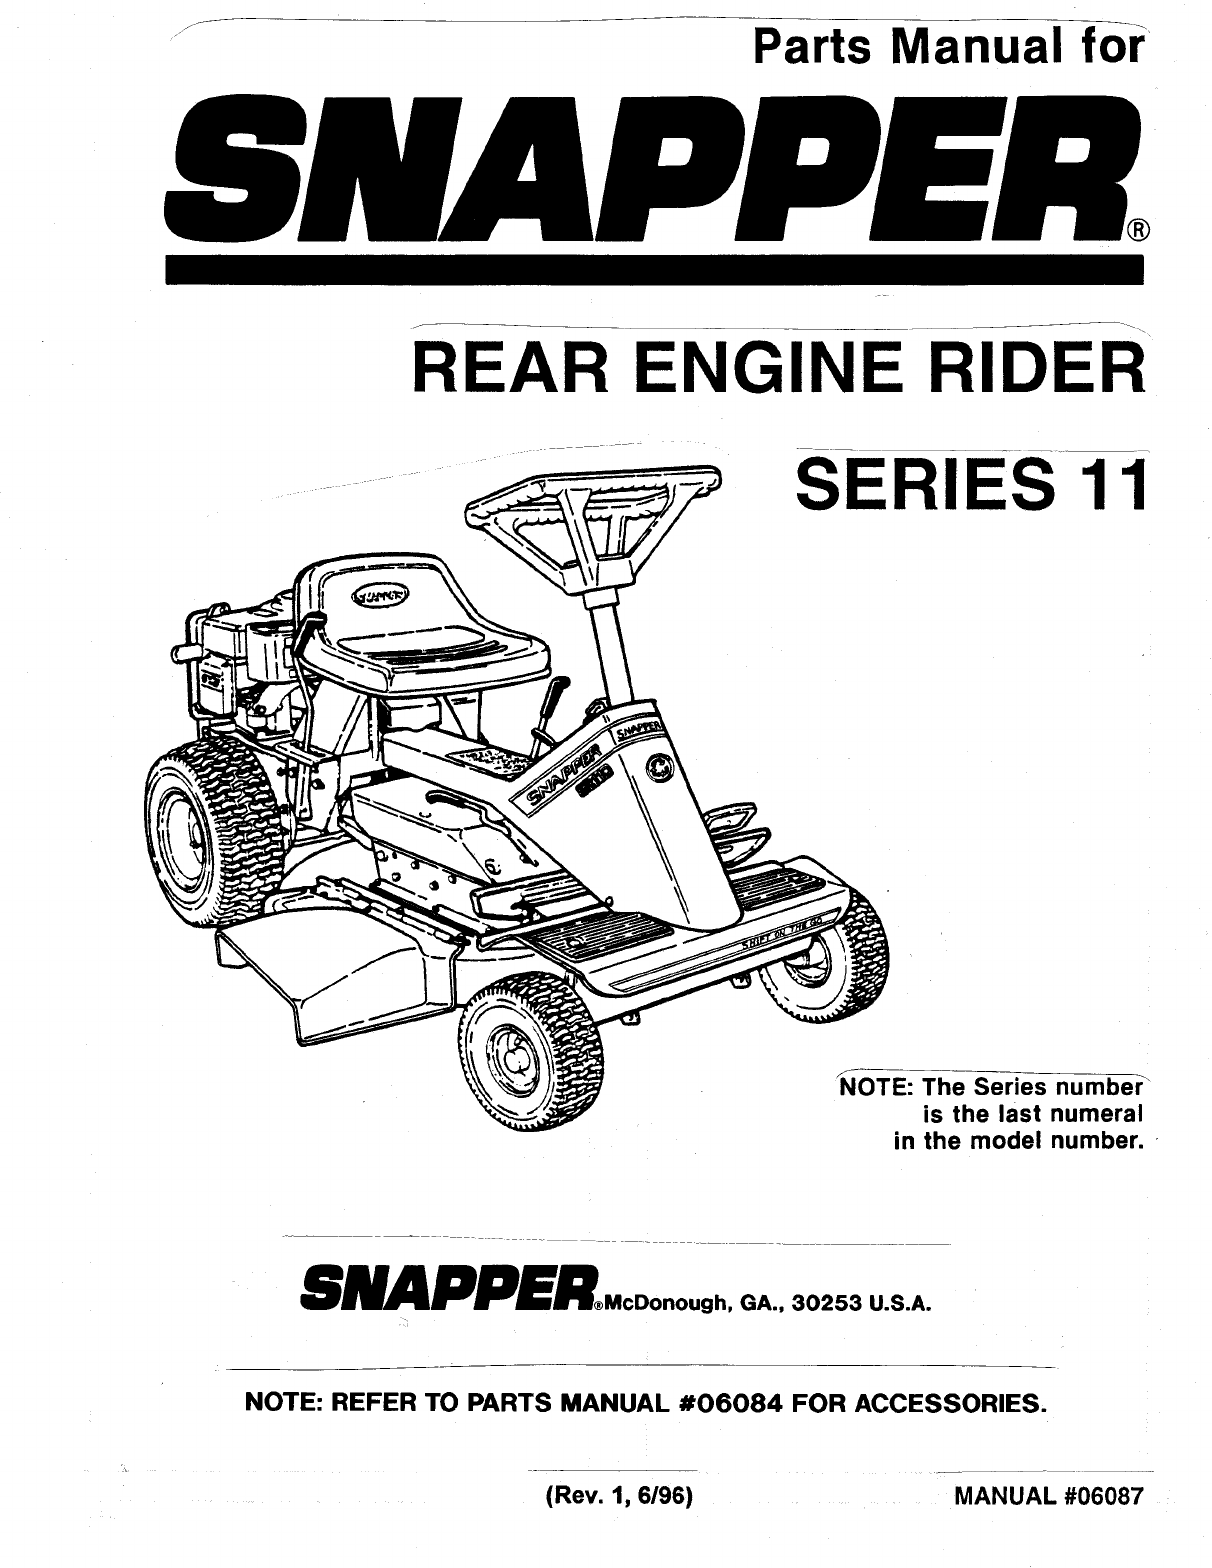 snapper lawn mower series 11 user guide manualsonline com rh lawnandgarden manualsonline com snapper parts manuals 06064 snapper parts manual 06128